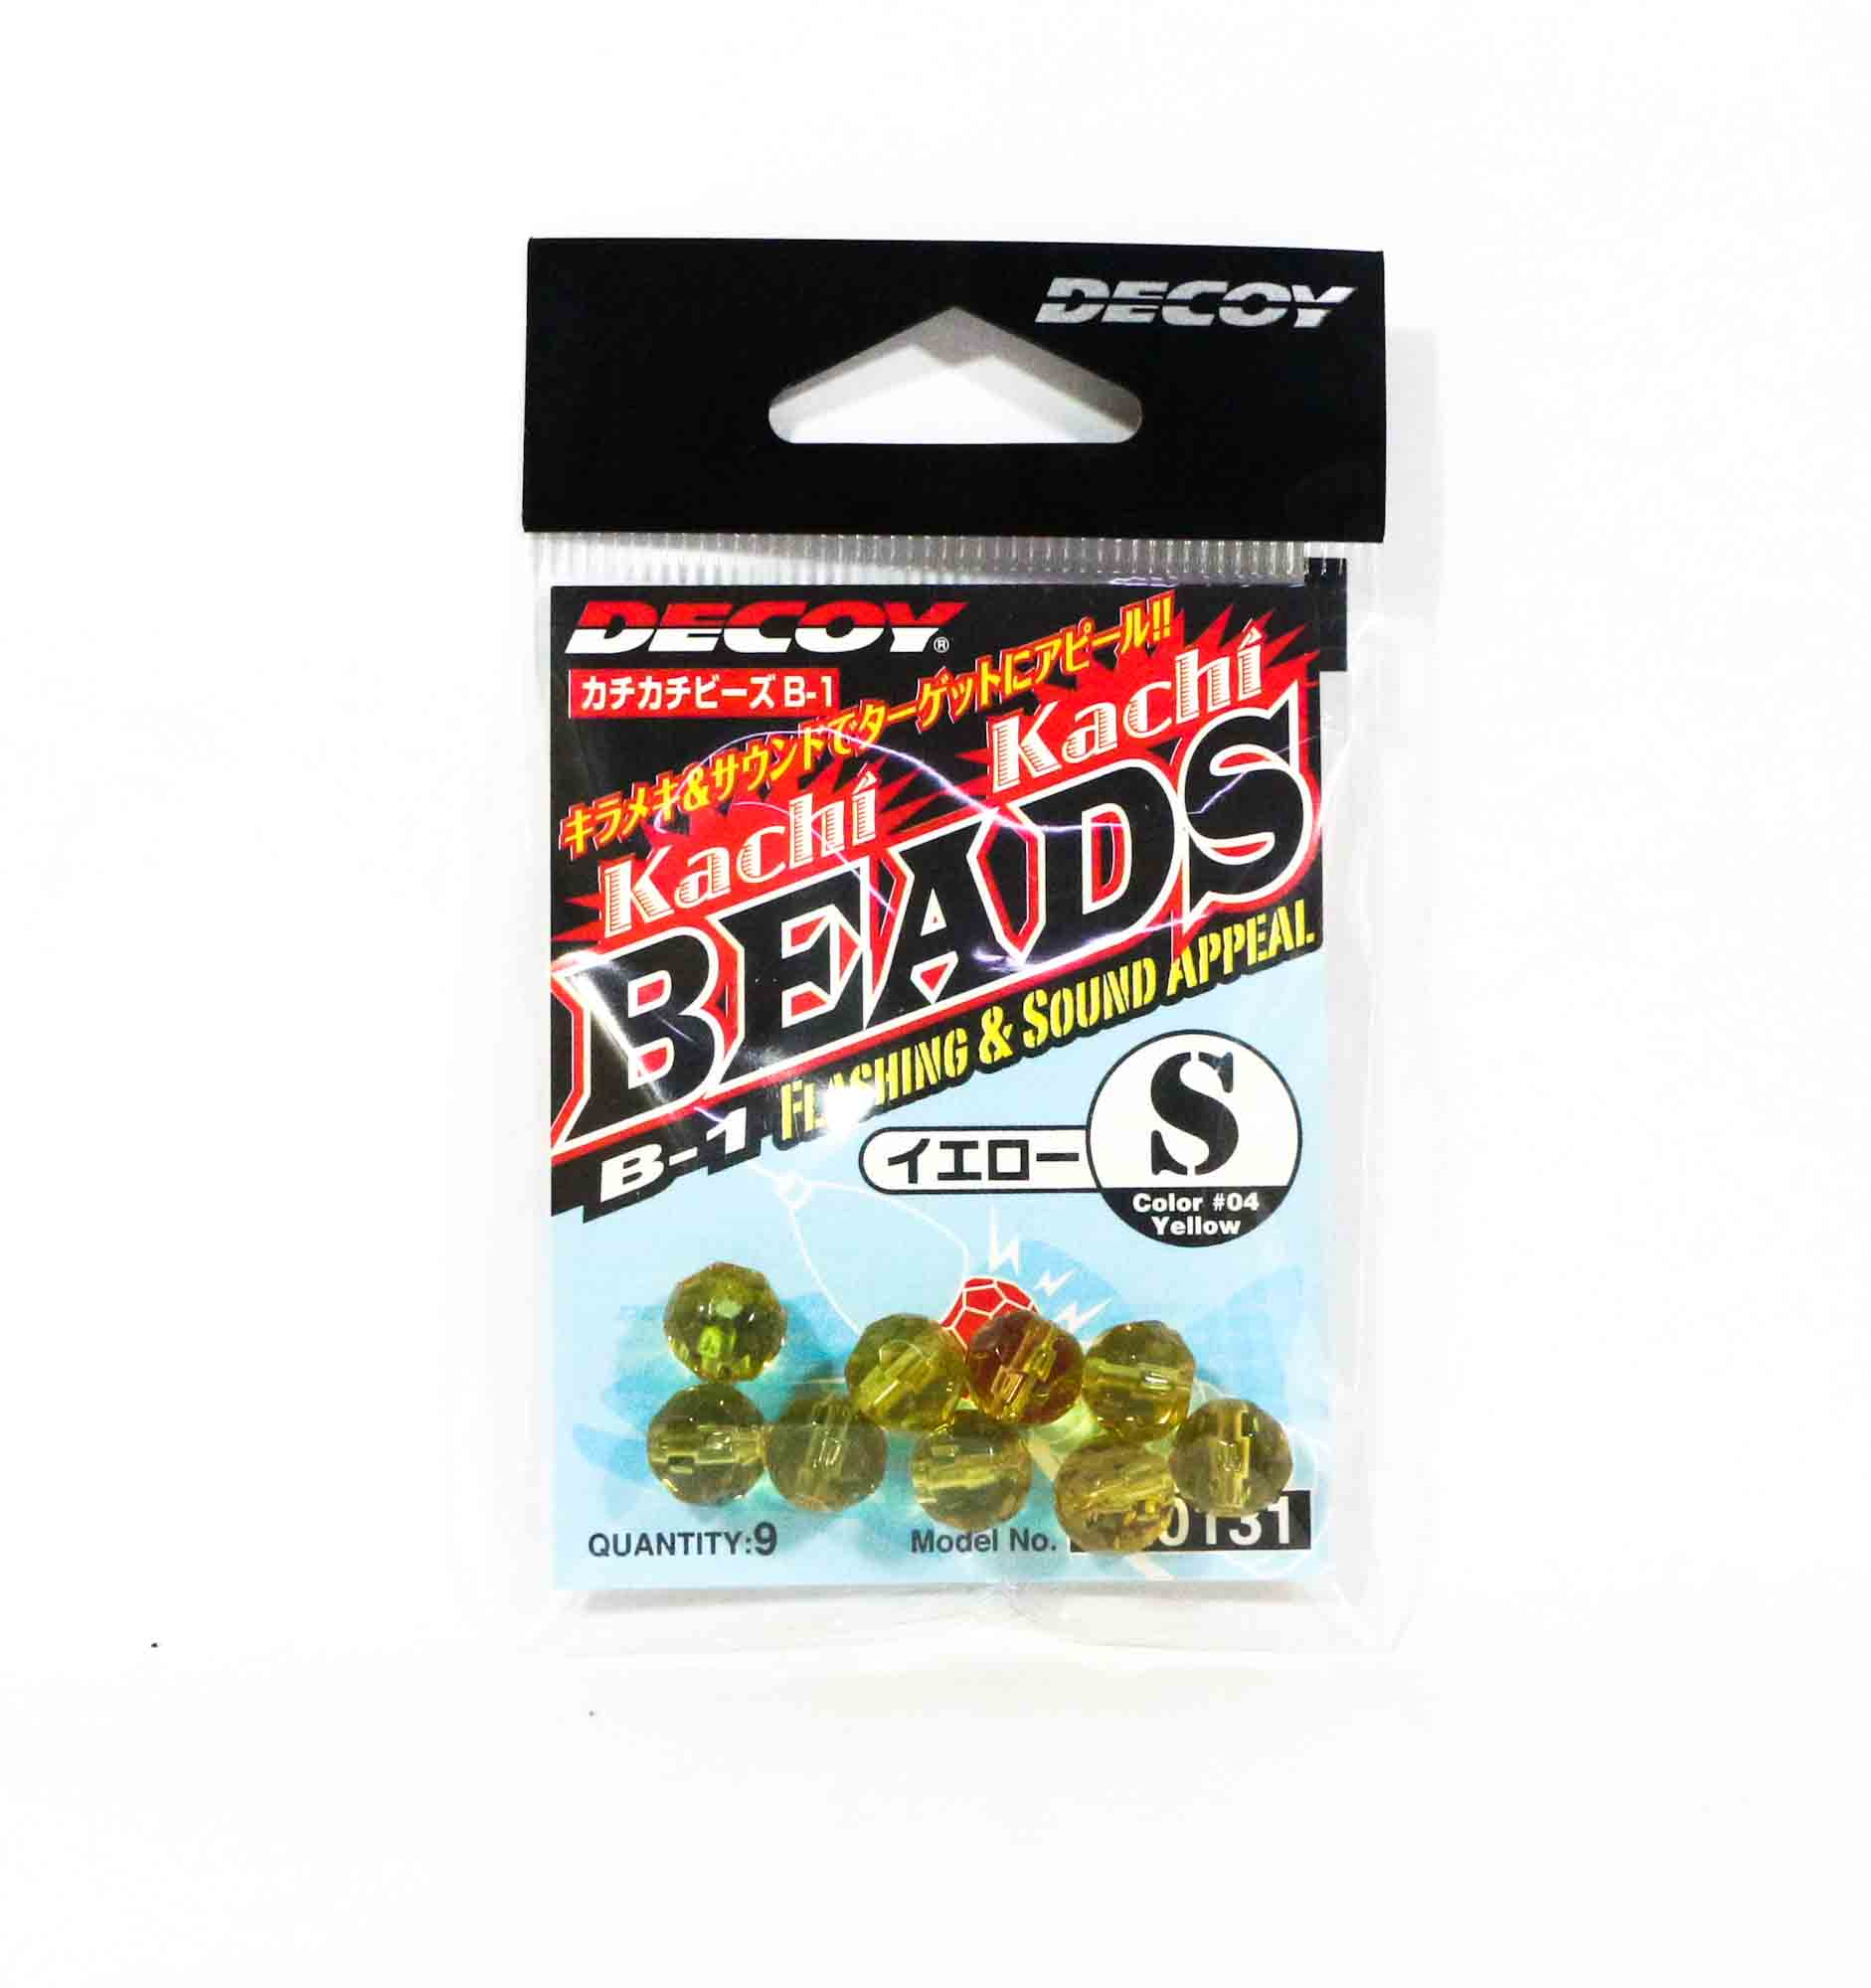 Decoy B-1 Kachi Kachi Beads Yellow Size S (0131)